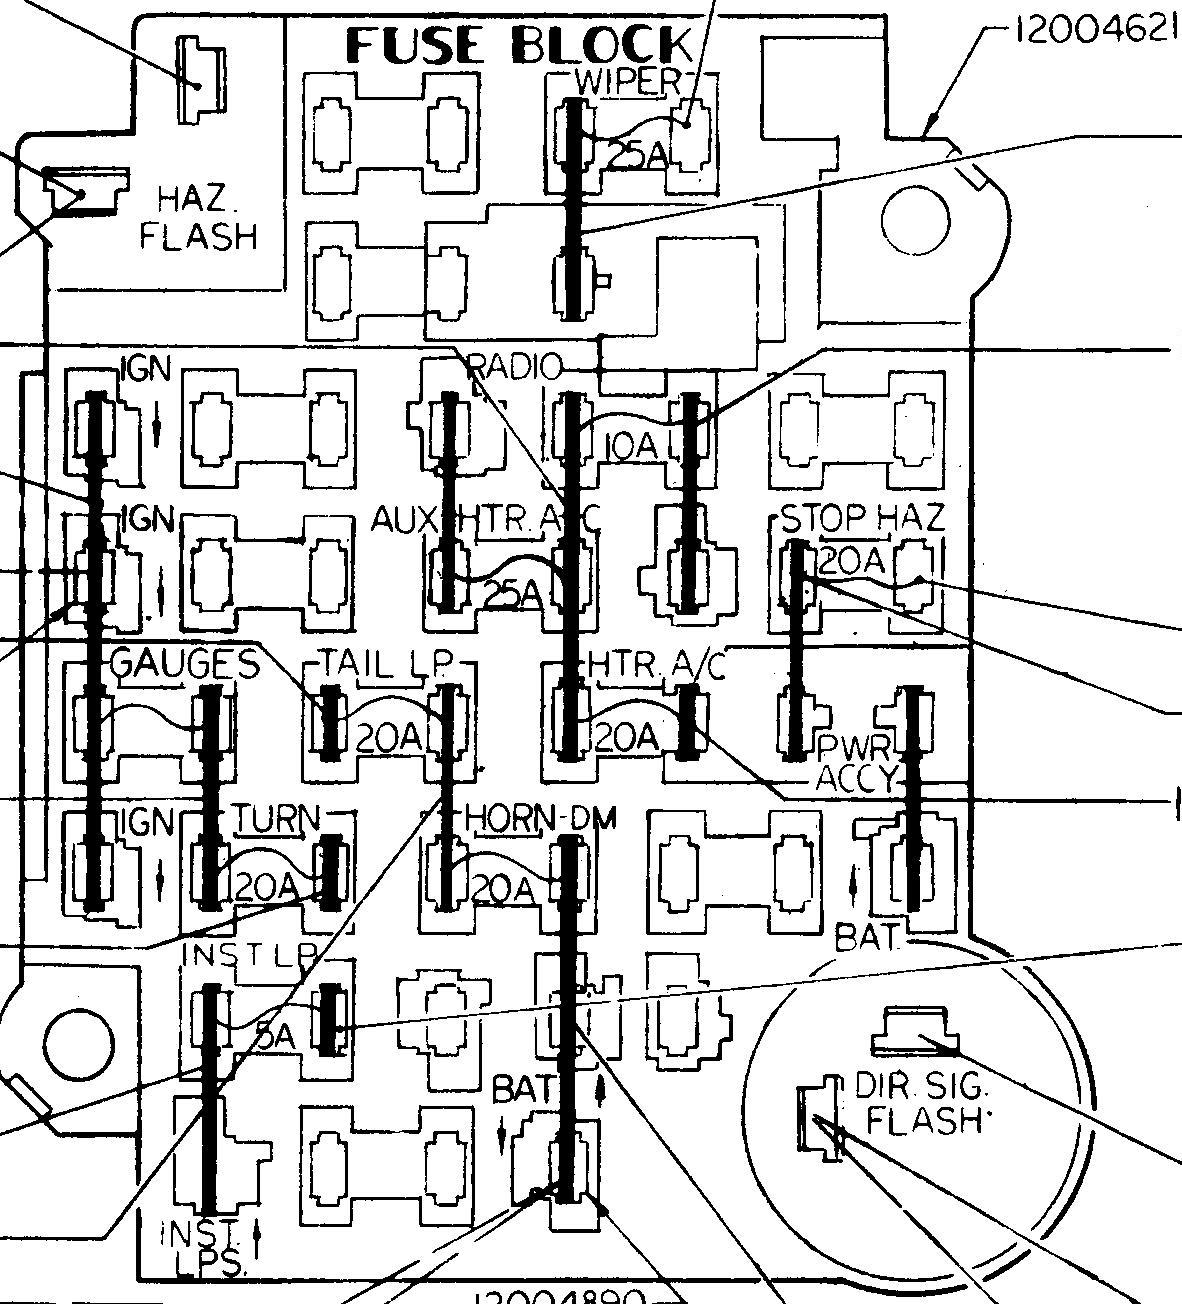 hight resolution of 84 chevy c10 fuse box diagram wiring diagram hub 1973 chevy truck fuse box diagram 1972 chevy truck fuse box diagram